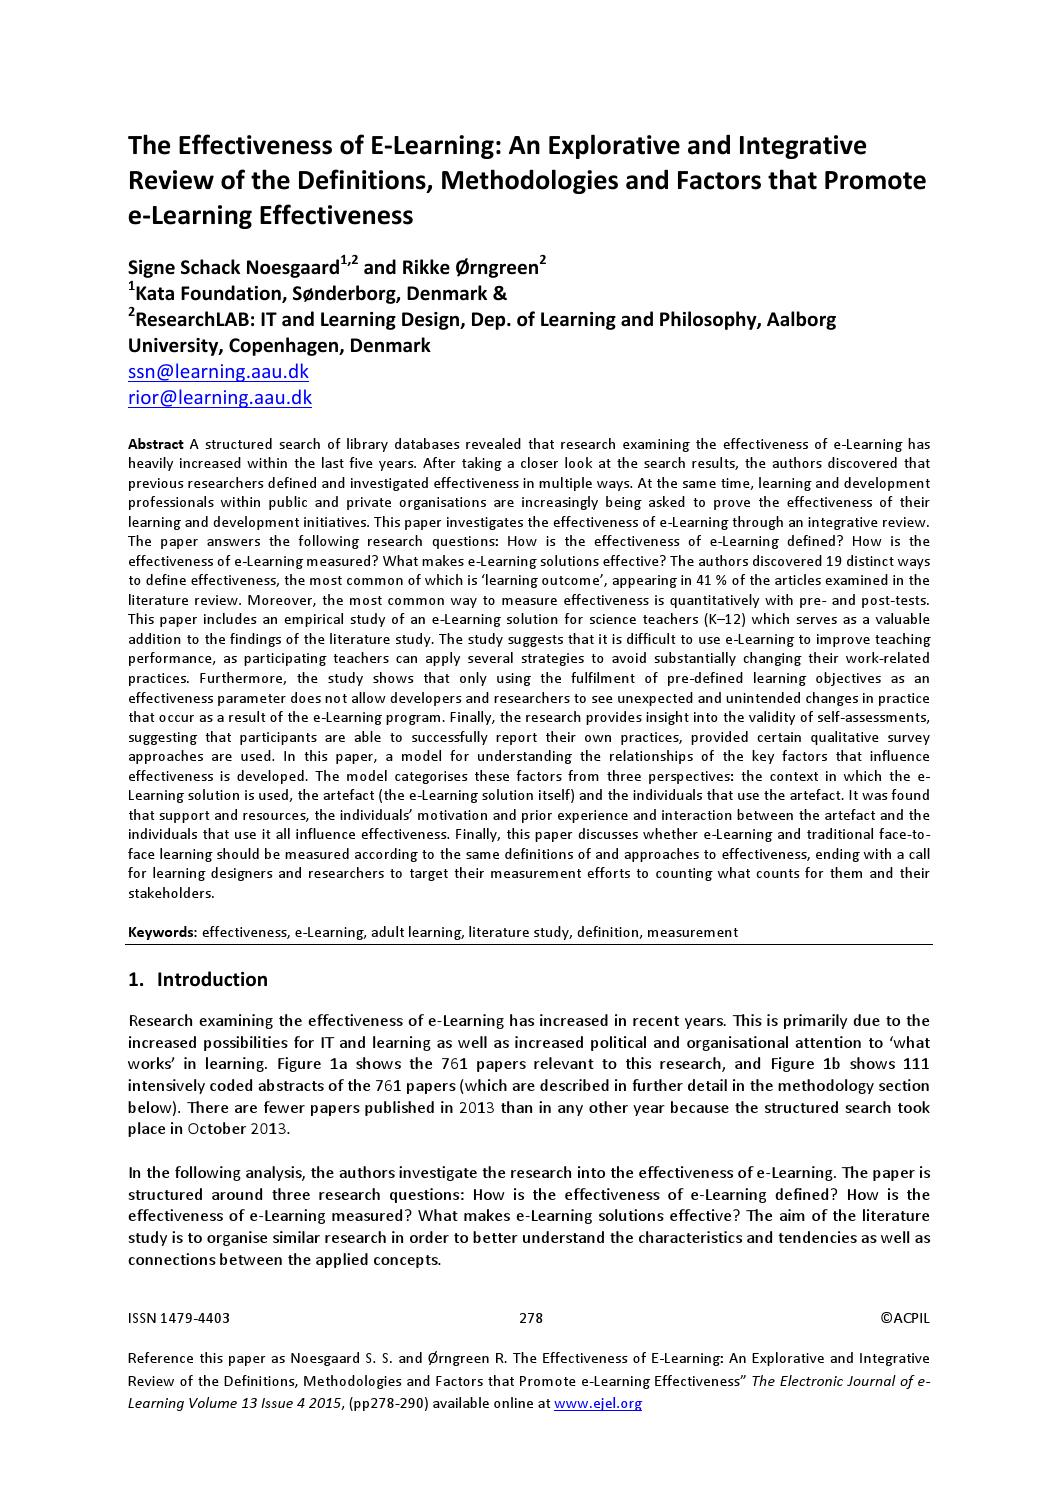 004 Page 1 Effectiveness Of Online Education Research Amazing Paper Full